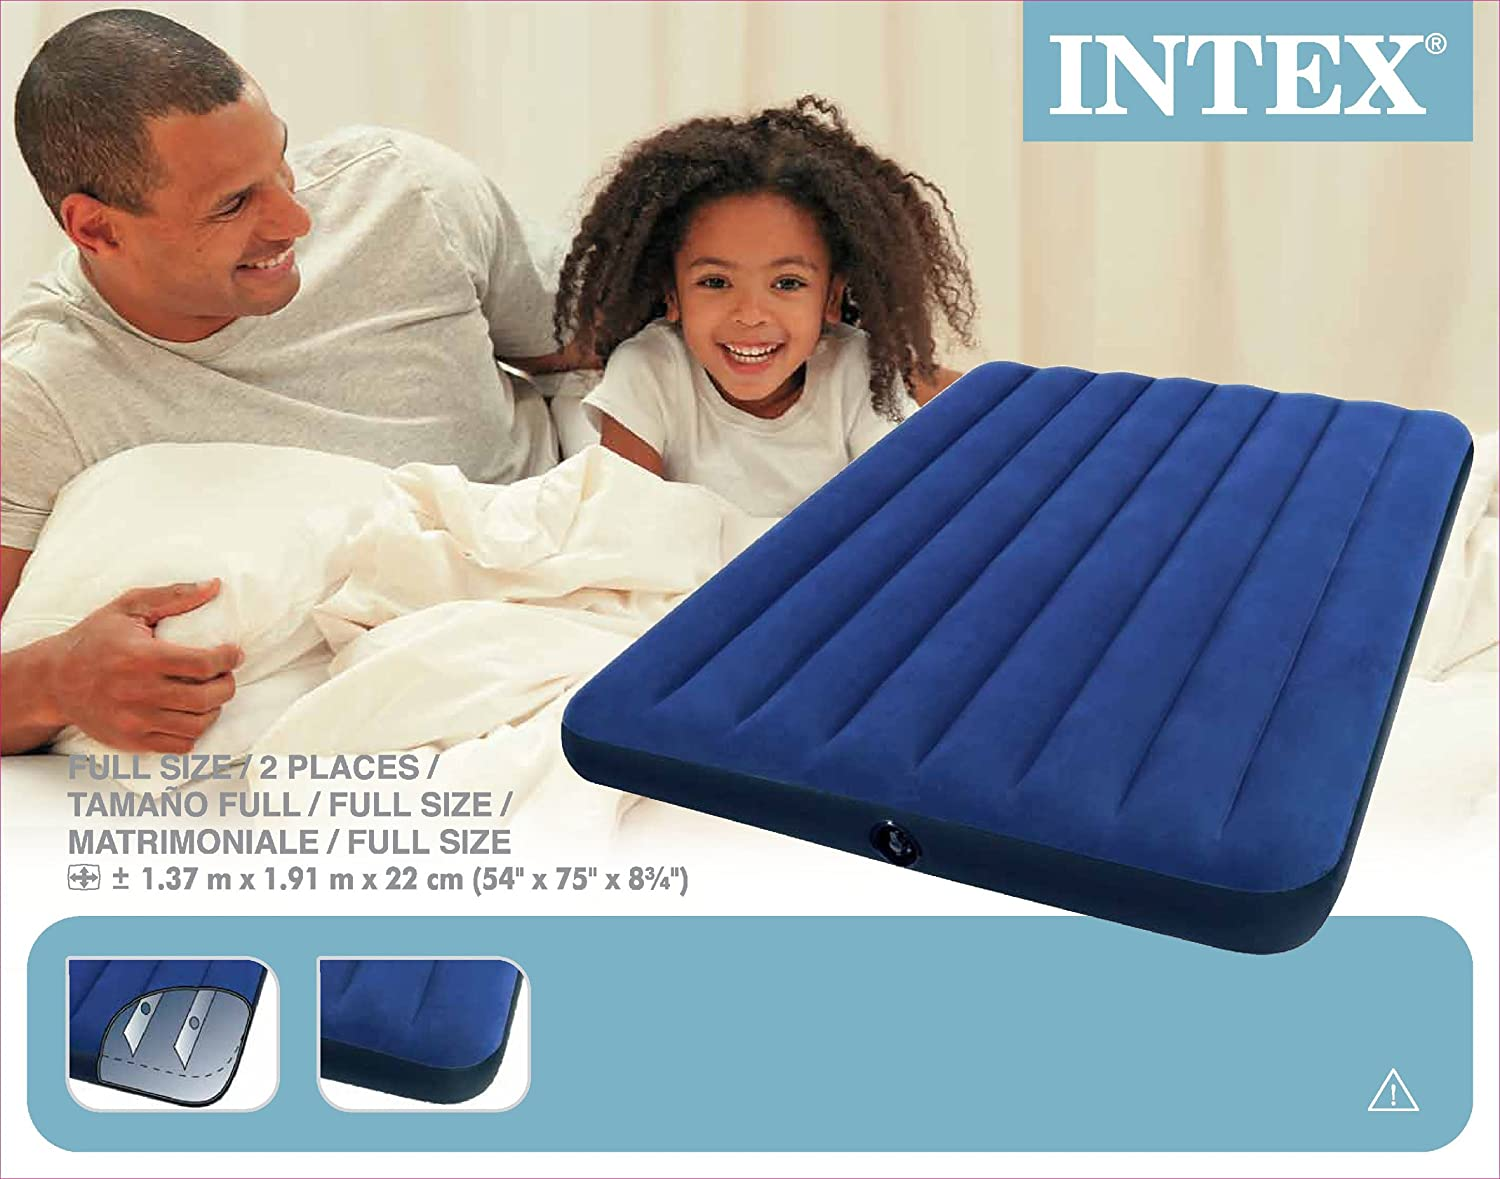 Amazon.com : Intex Classic Downy Airbed, Full : Camping Air Mattresses : Sports & Outdoors